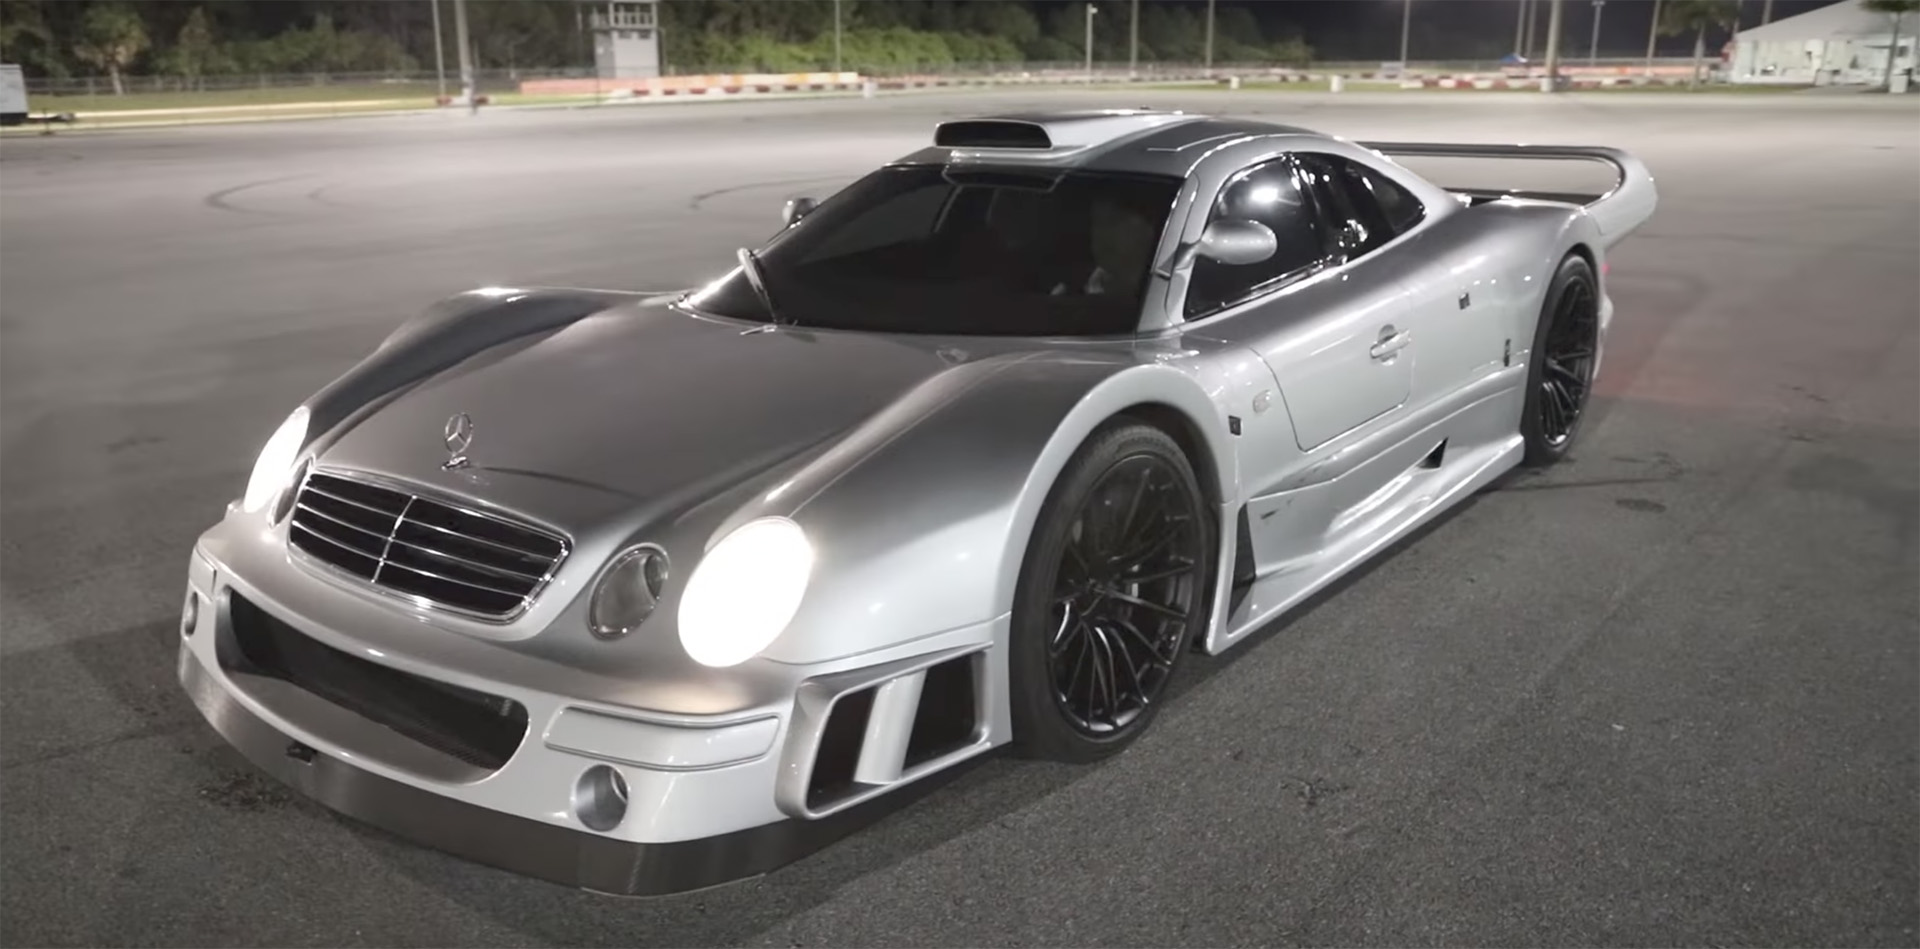 enjoy the sights and sounds of the mercedes benz clk gtr. Black Bedroom Furniture Sets. Home Design Ideas